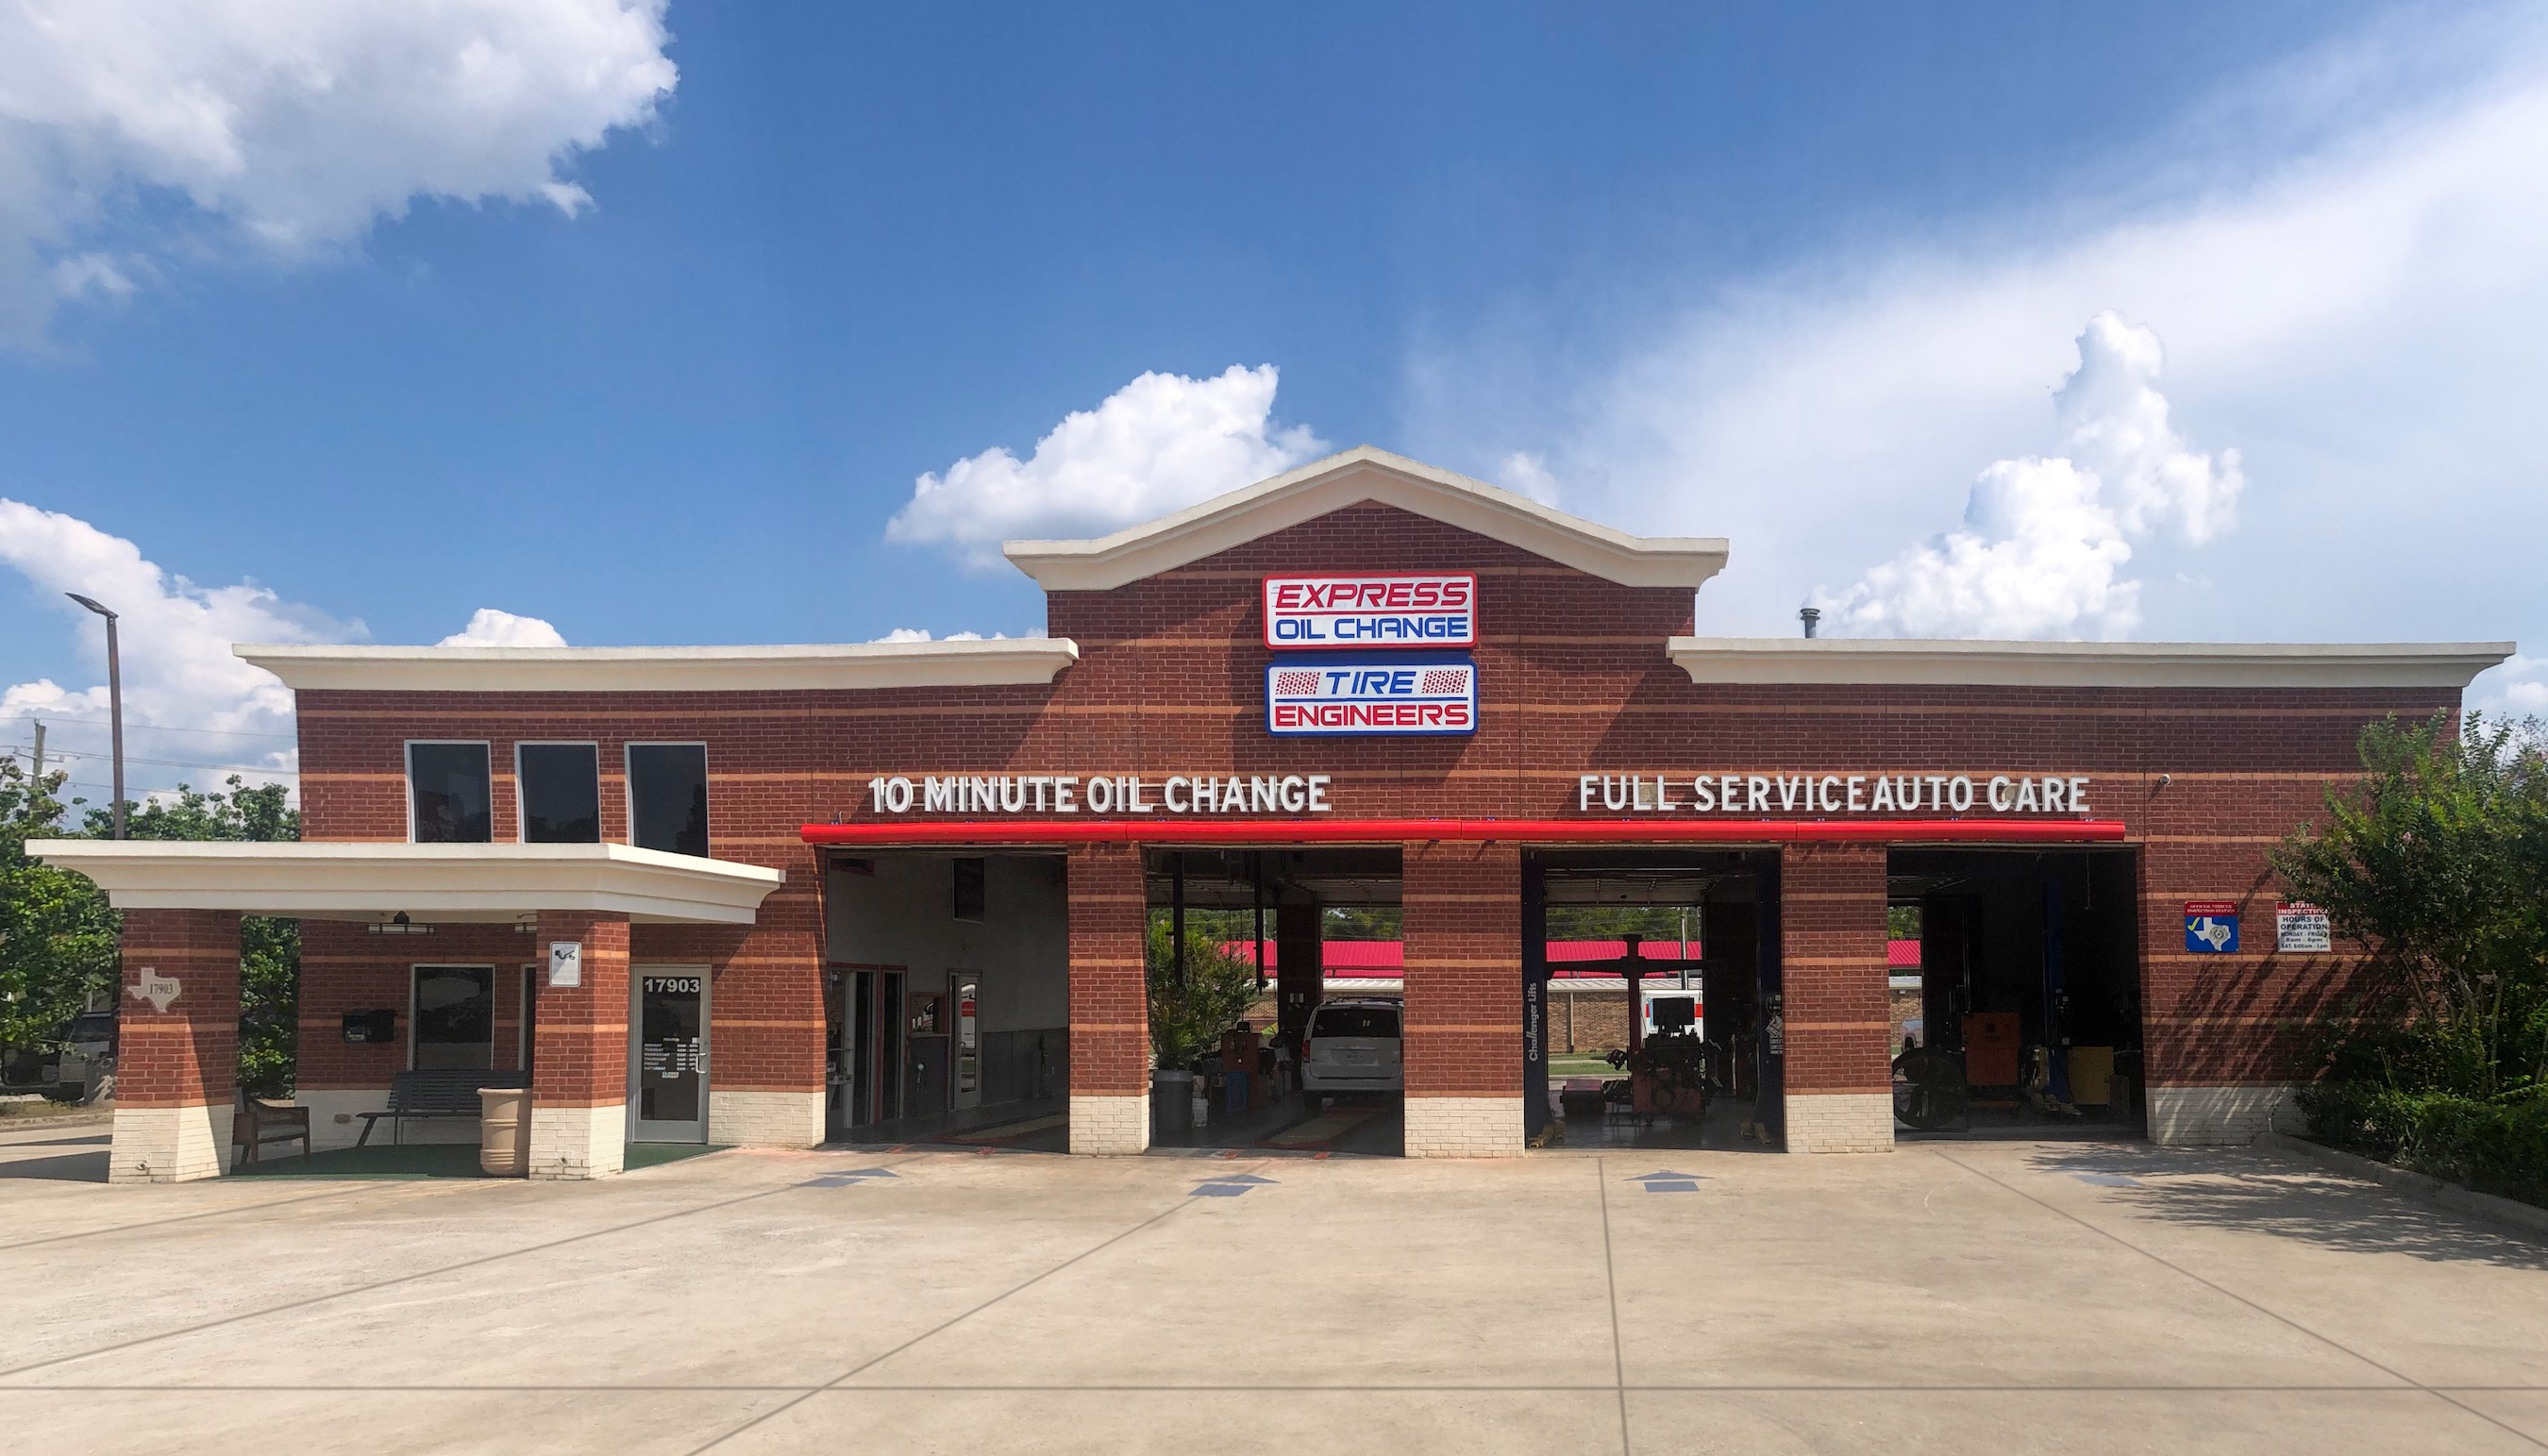 Express Oil Change & Tire Engineers at Magnolia, TX - Magnolia West store